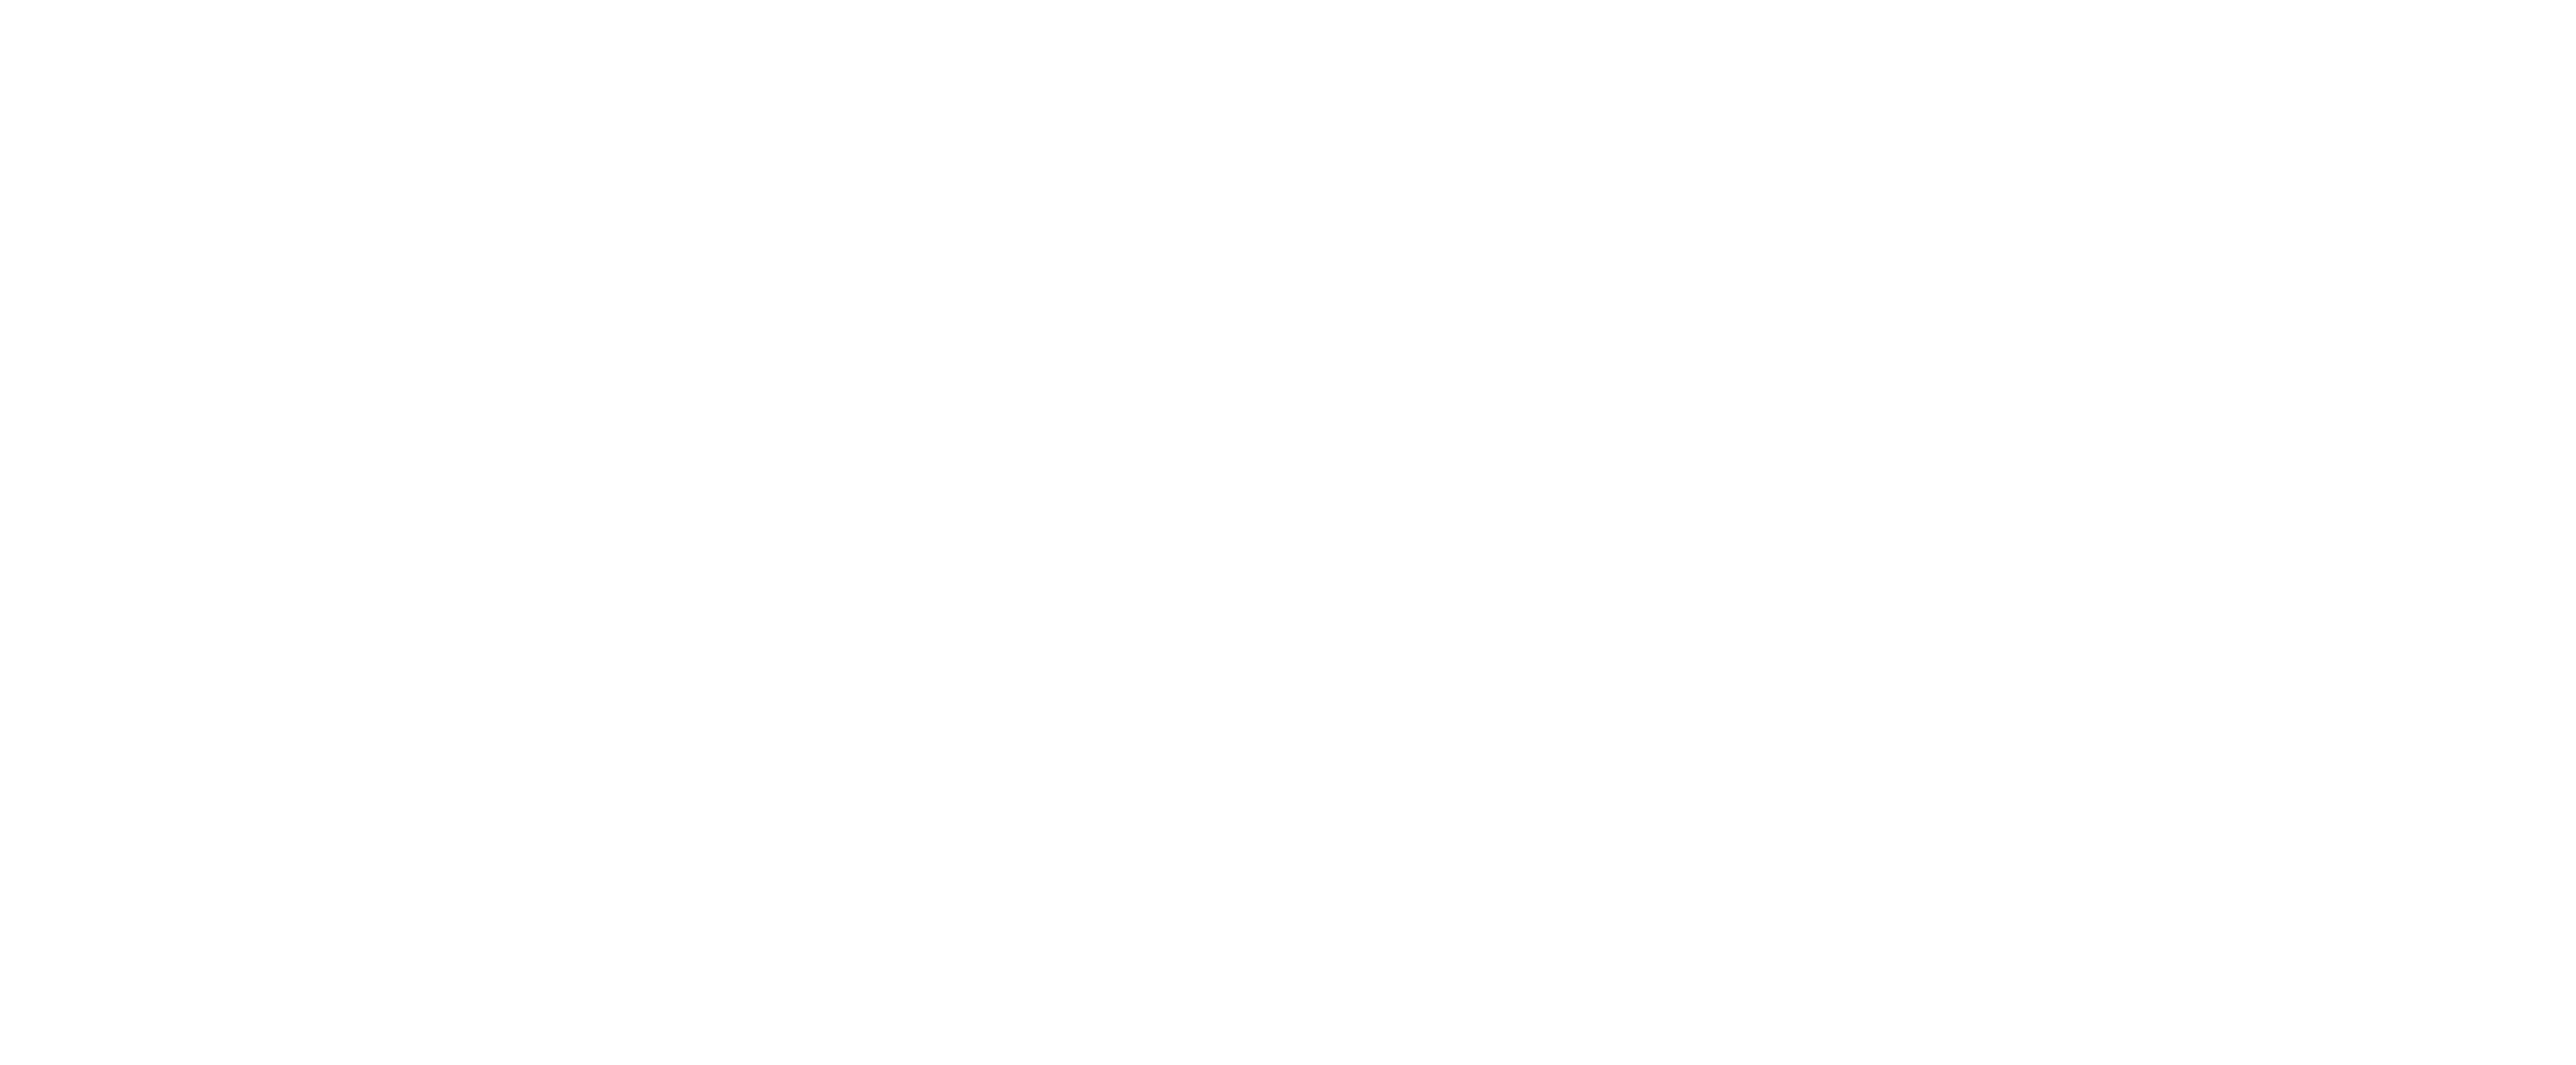 Natural Gas Society of the Permian Basin